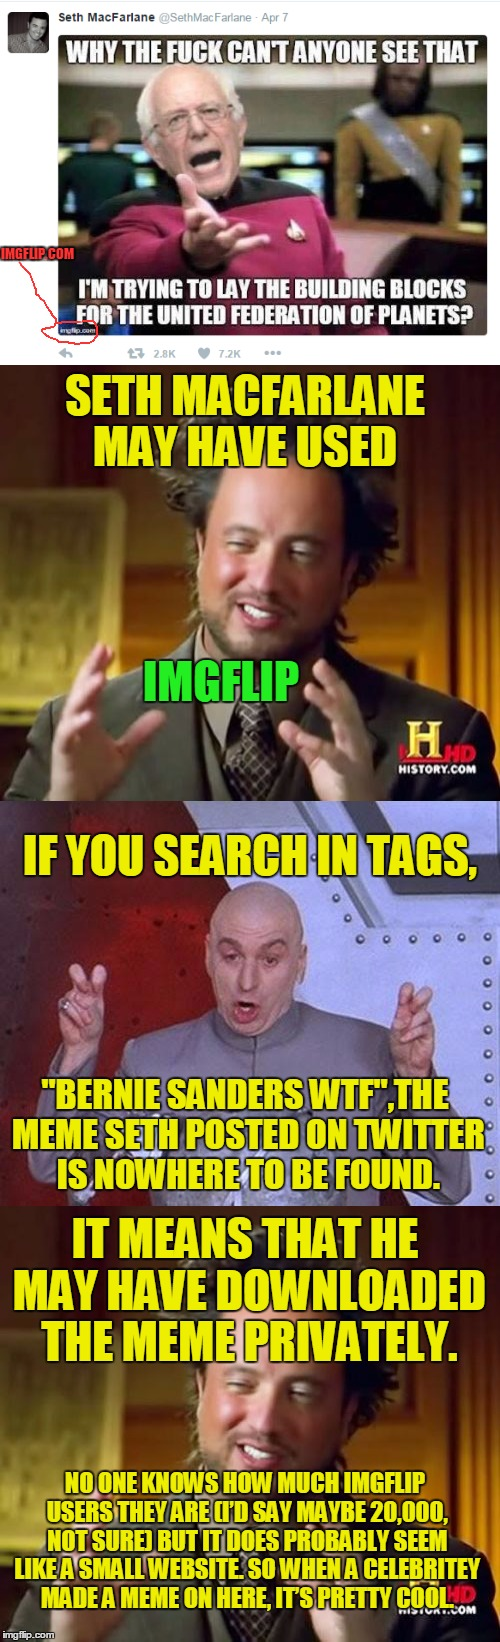 "Seth MacFarlane may have made a meme on Imgflip! Anybody know if there's any other Celebrities that have been here? | IMGFLIP.COM SETH MACFARLANE MAY HAVE USED IMGFLIP IF YOU SEARCH IN TAGS, ""BERNIE SANDERS WTF"",THE MEME SETH POSTED ON TWITTER IS NOWHERE TO  